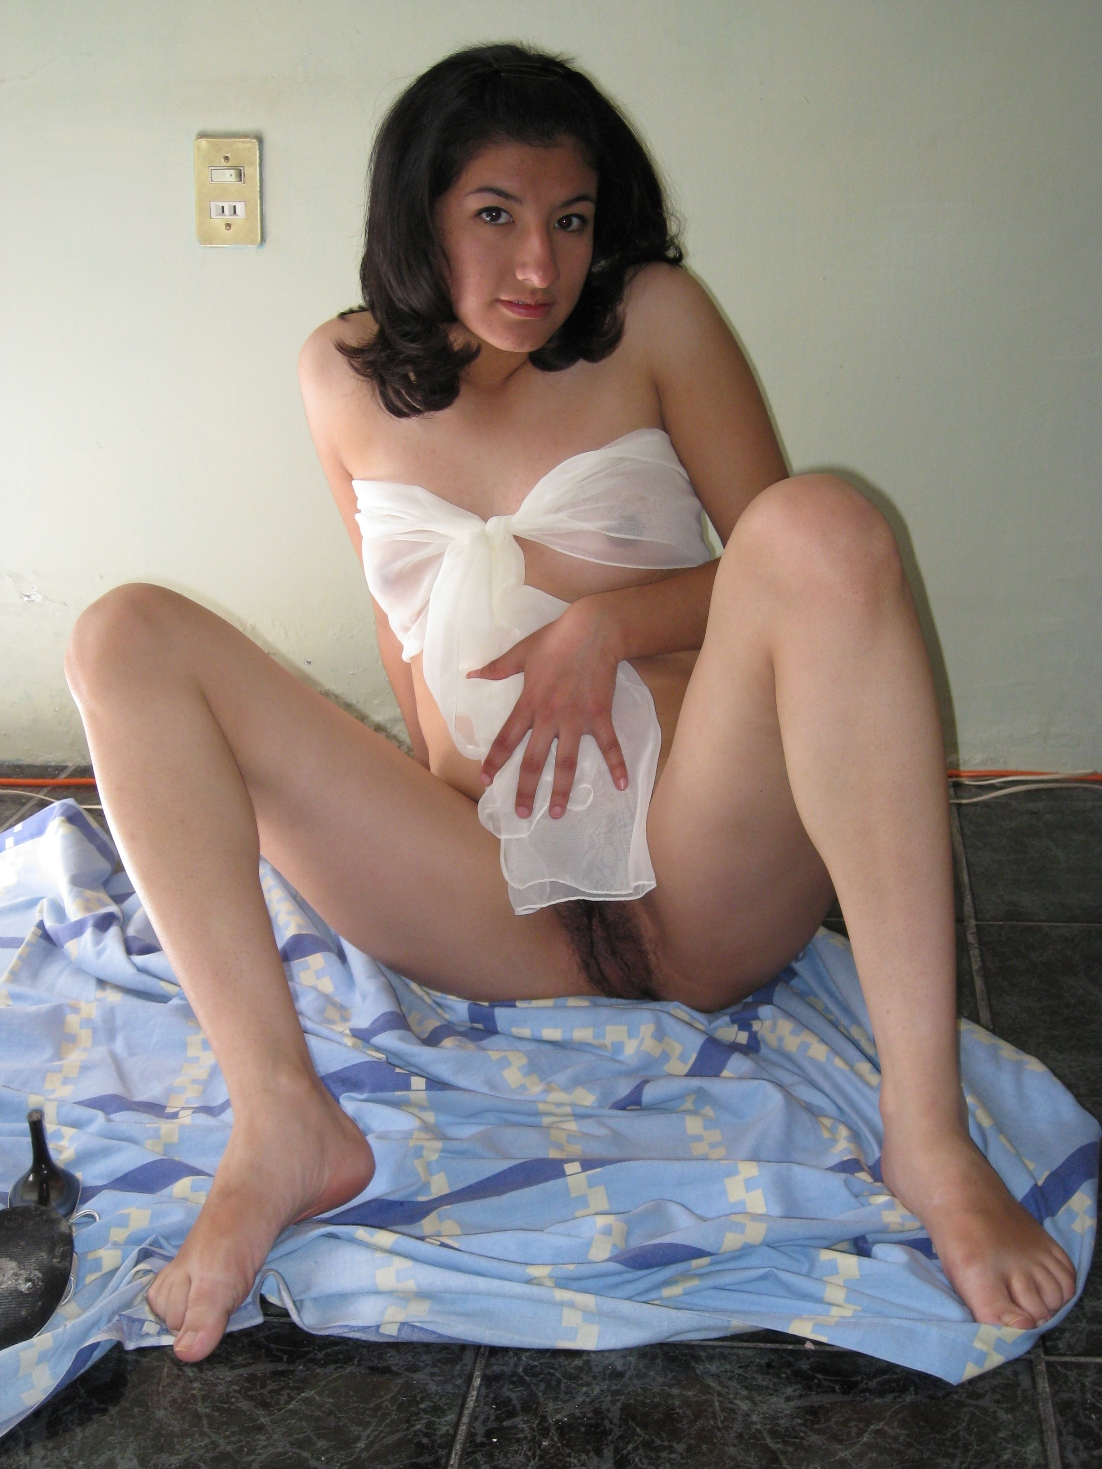 Cute Naked Amateur Mexican Girl Submission Pictures  Nude -3474